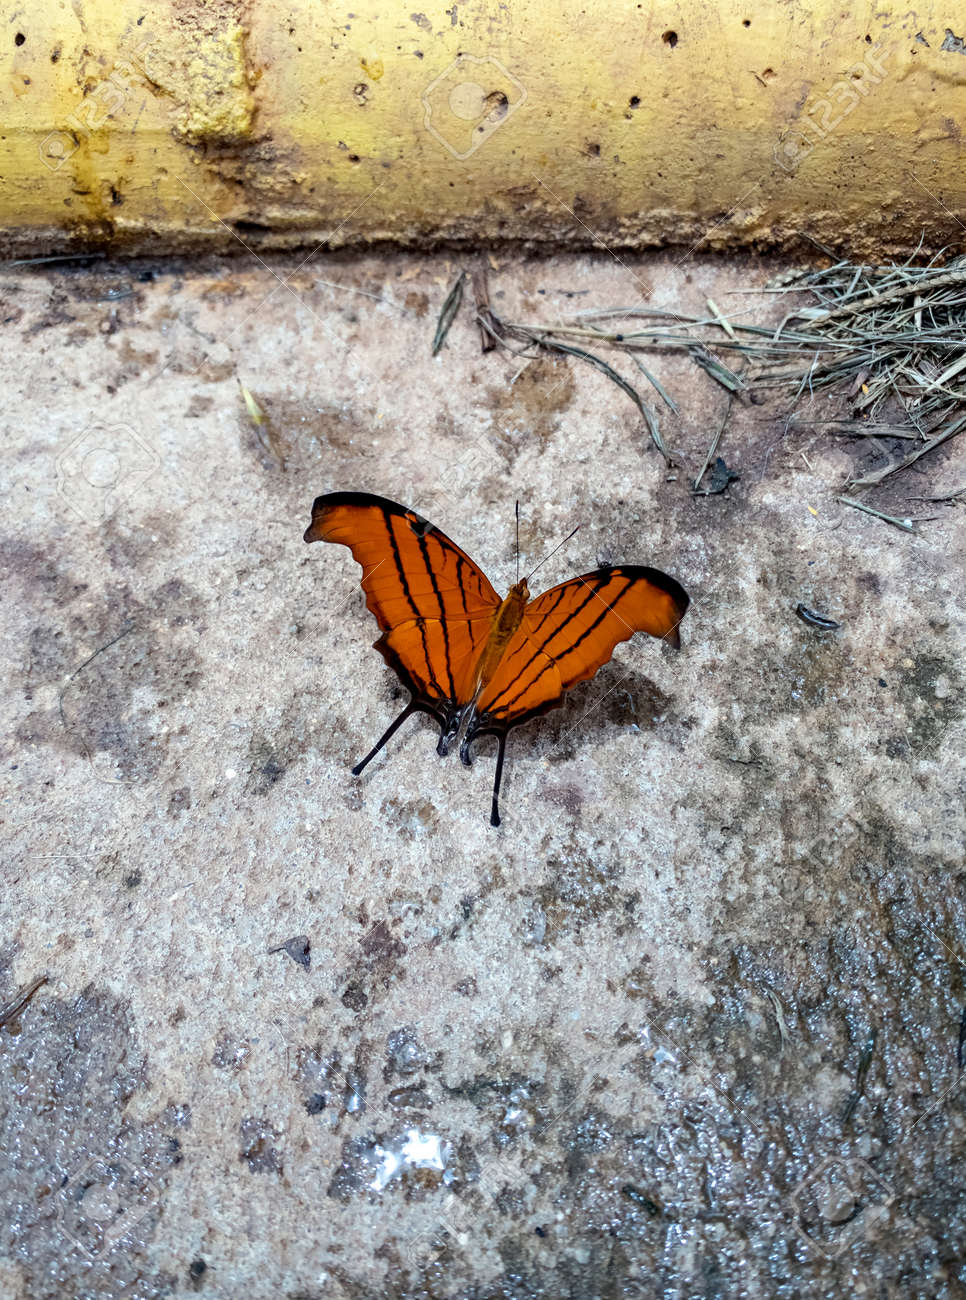 Beauty butterfly resting on the ground. - 167513599